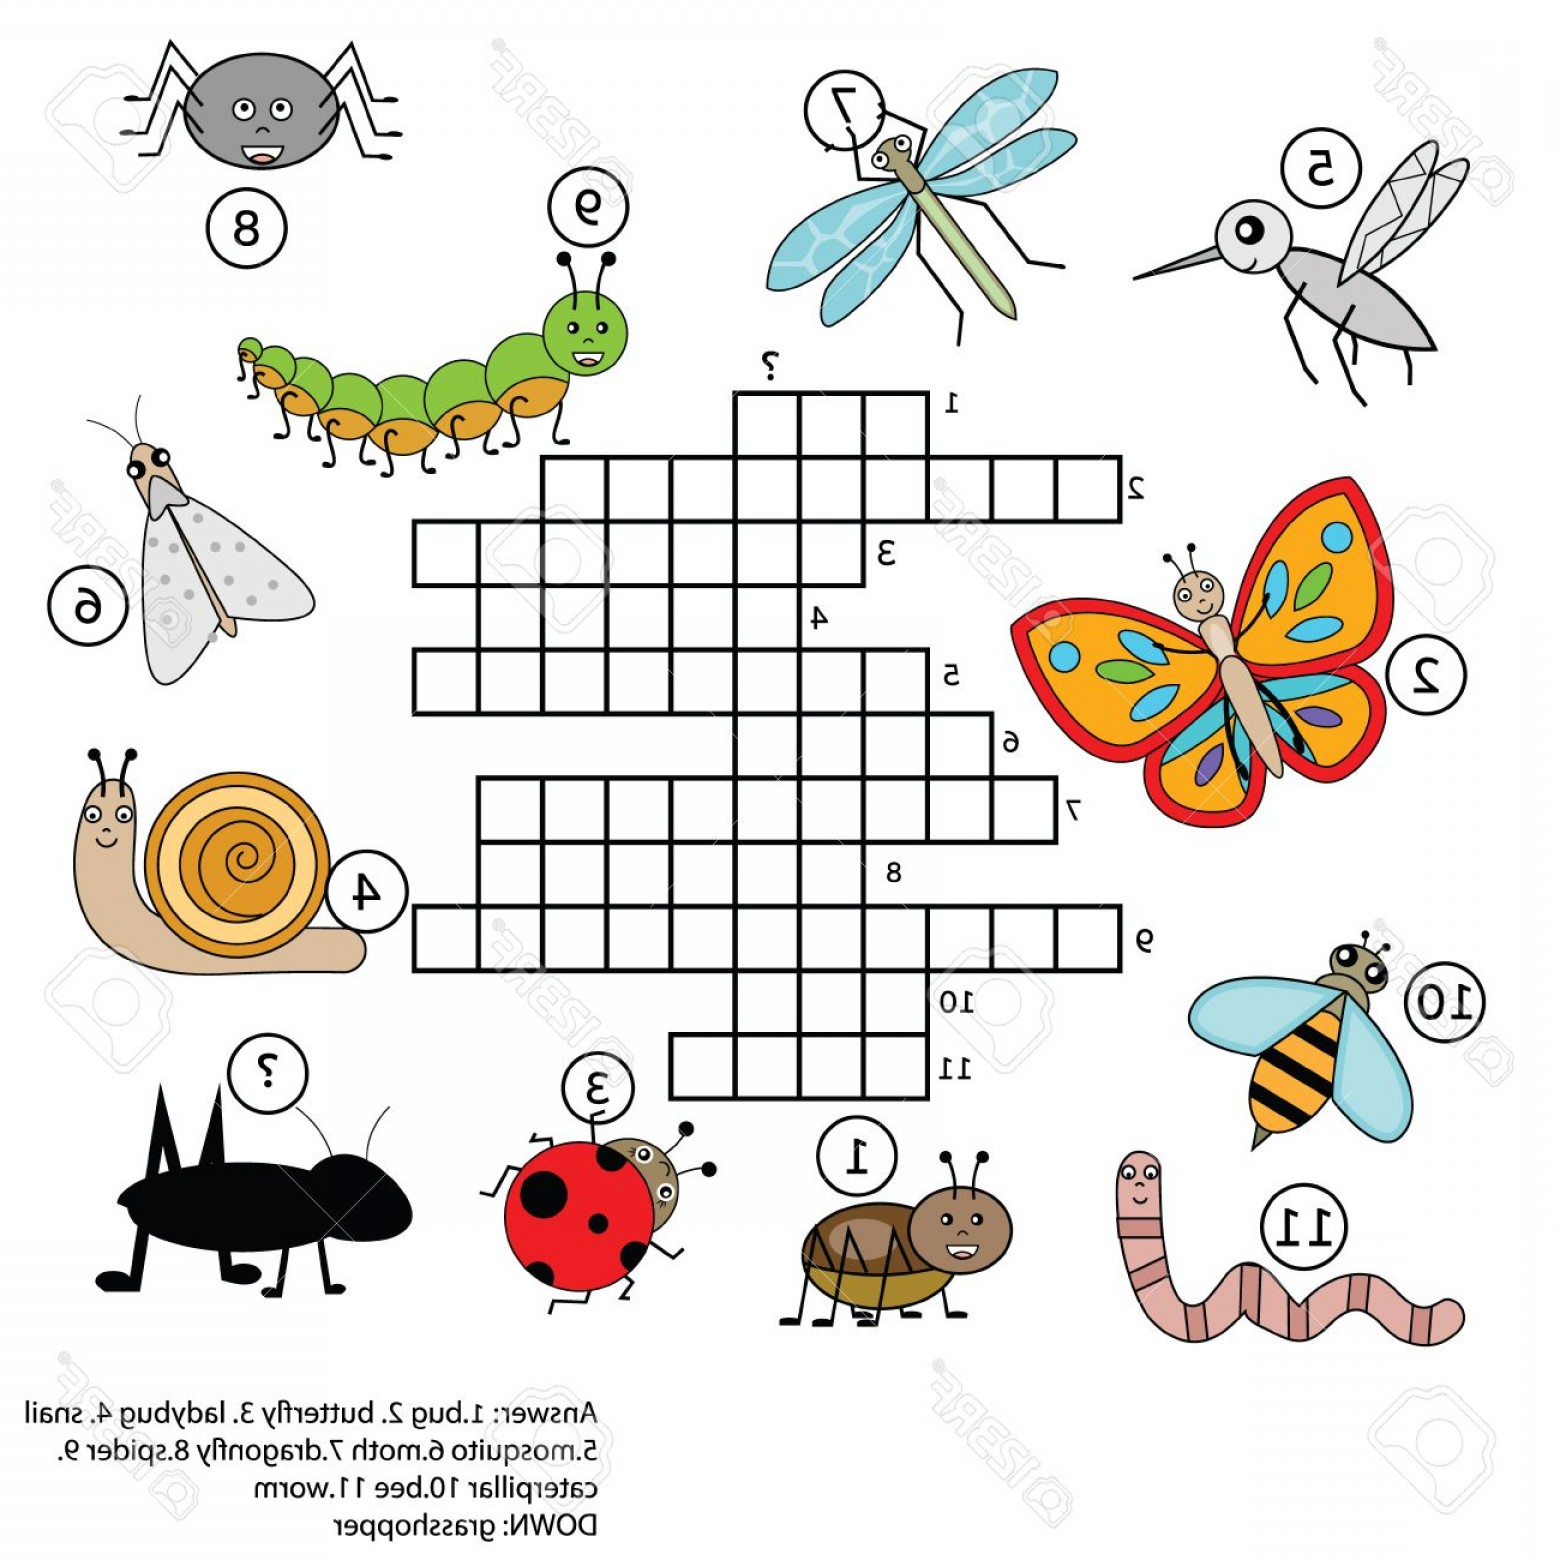 Mosquito Vector Worksheet: Photostock Vector Crossword Educational Children Game With Answer Learning Vocabulary Animals And Insects Theme Vector